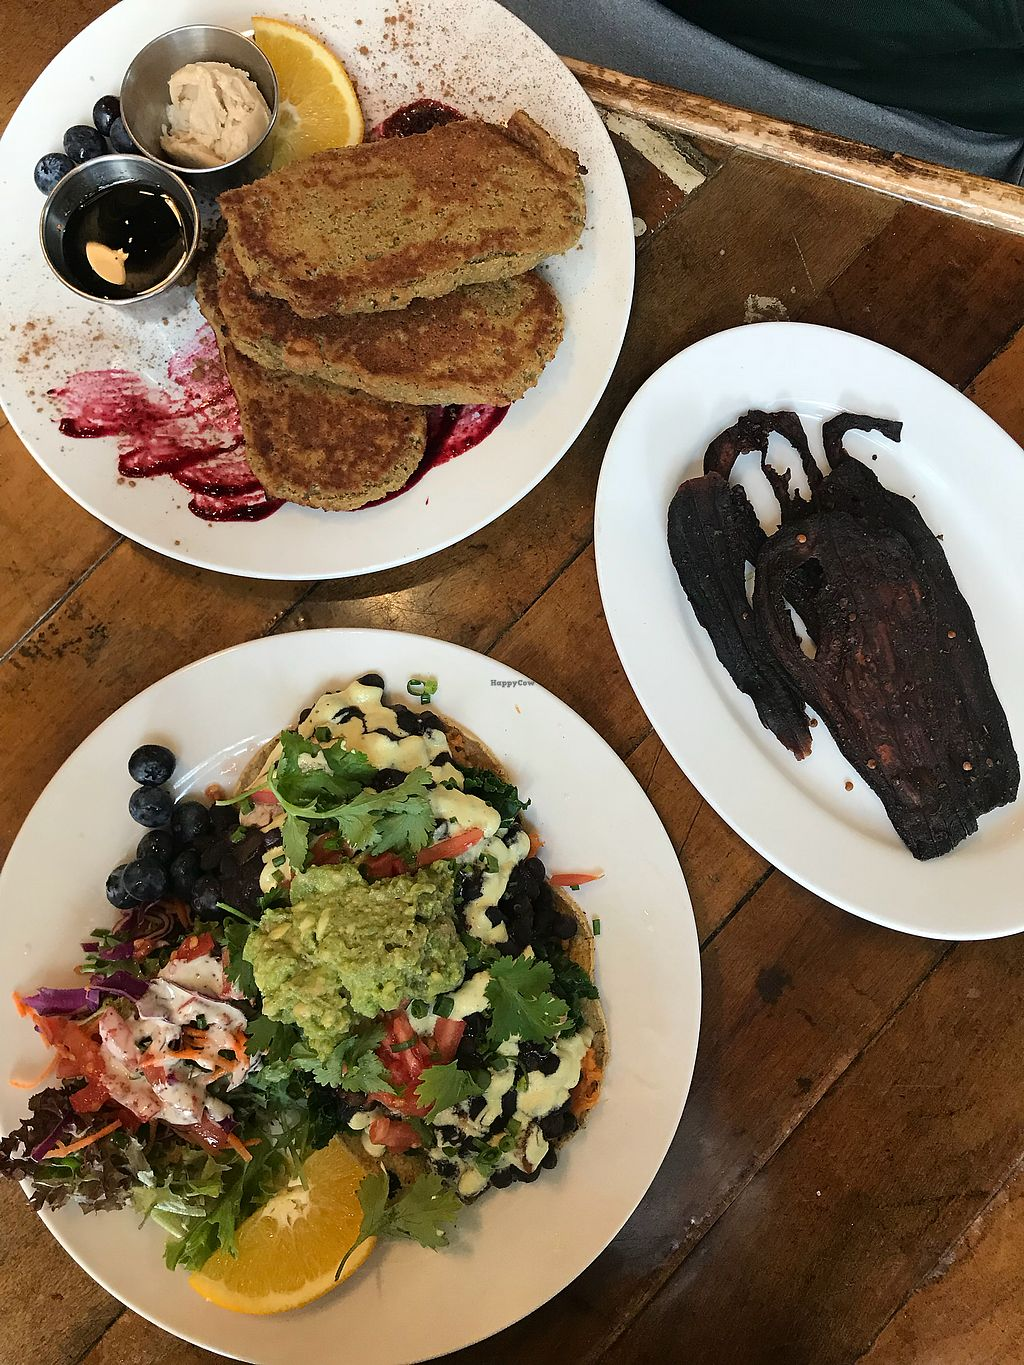 """Photo of Pingala Cafe  by <a href=""""/members/profile/theveganregan"""">theveganregan</a> <br/>Rancheros, French Toast, Eggplant Bacon <br/> November 11, 2017  - <a href='/contact/abuse/image/45669/324288'>Report</a>"""